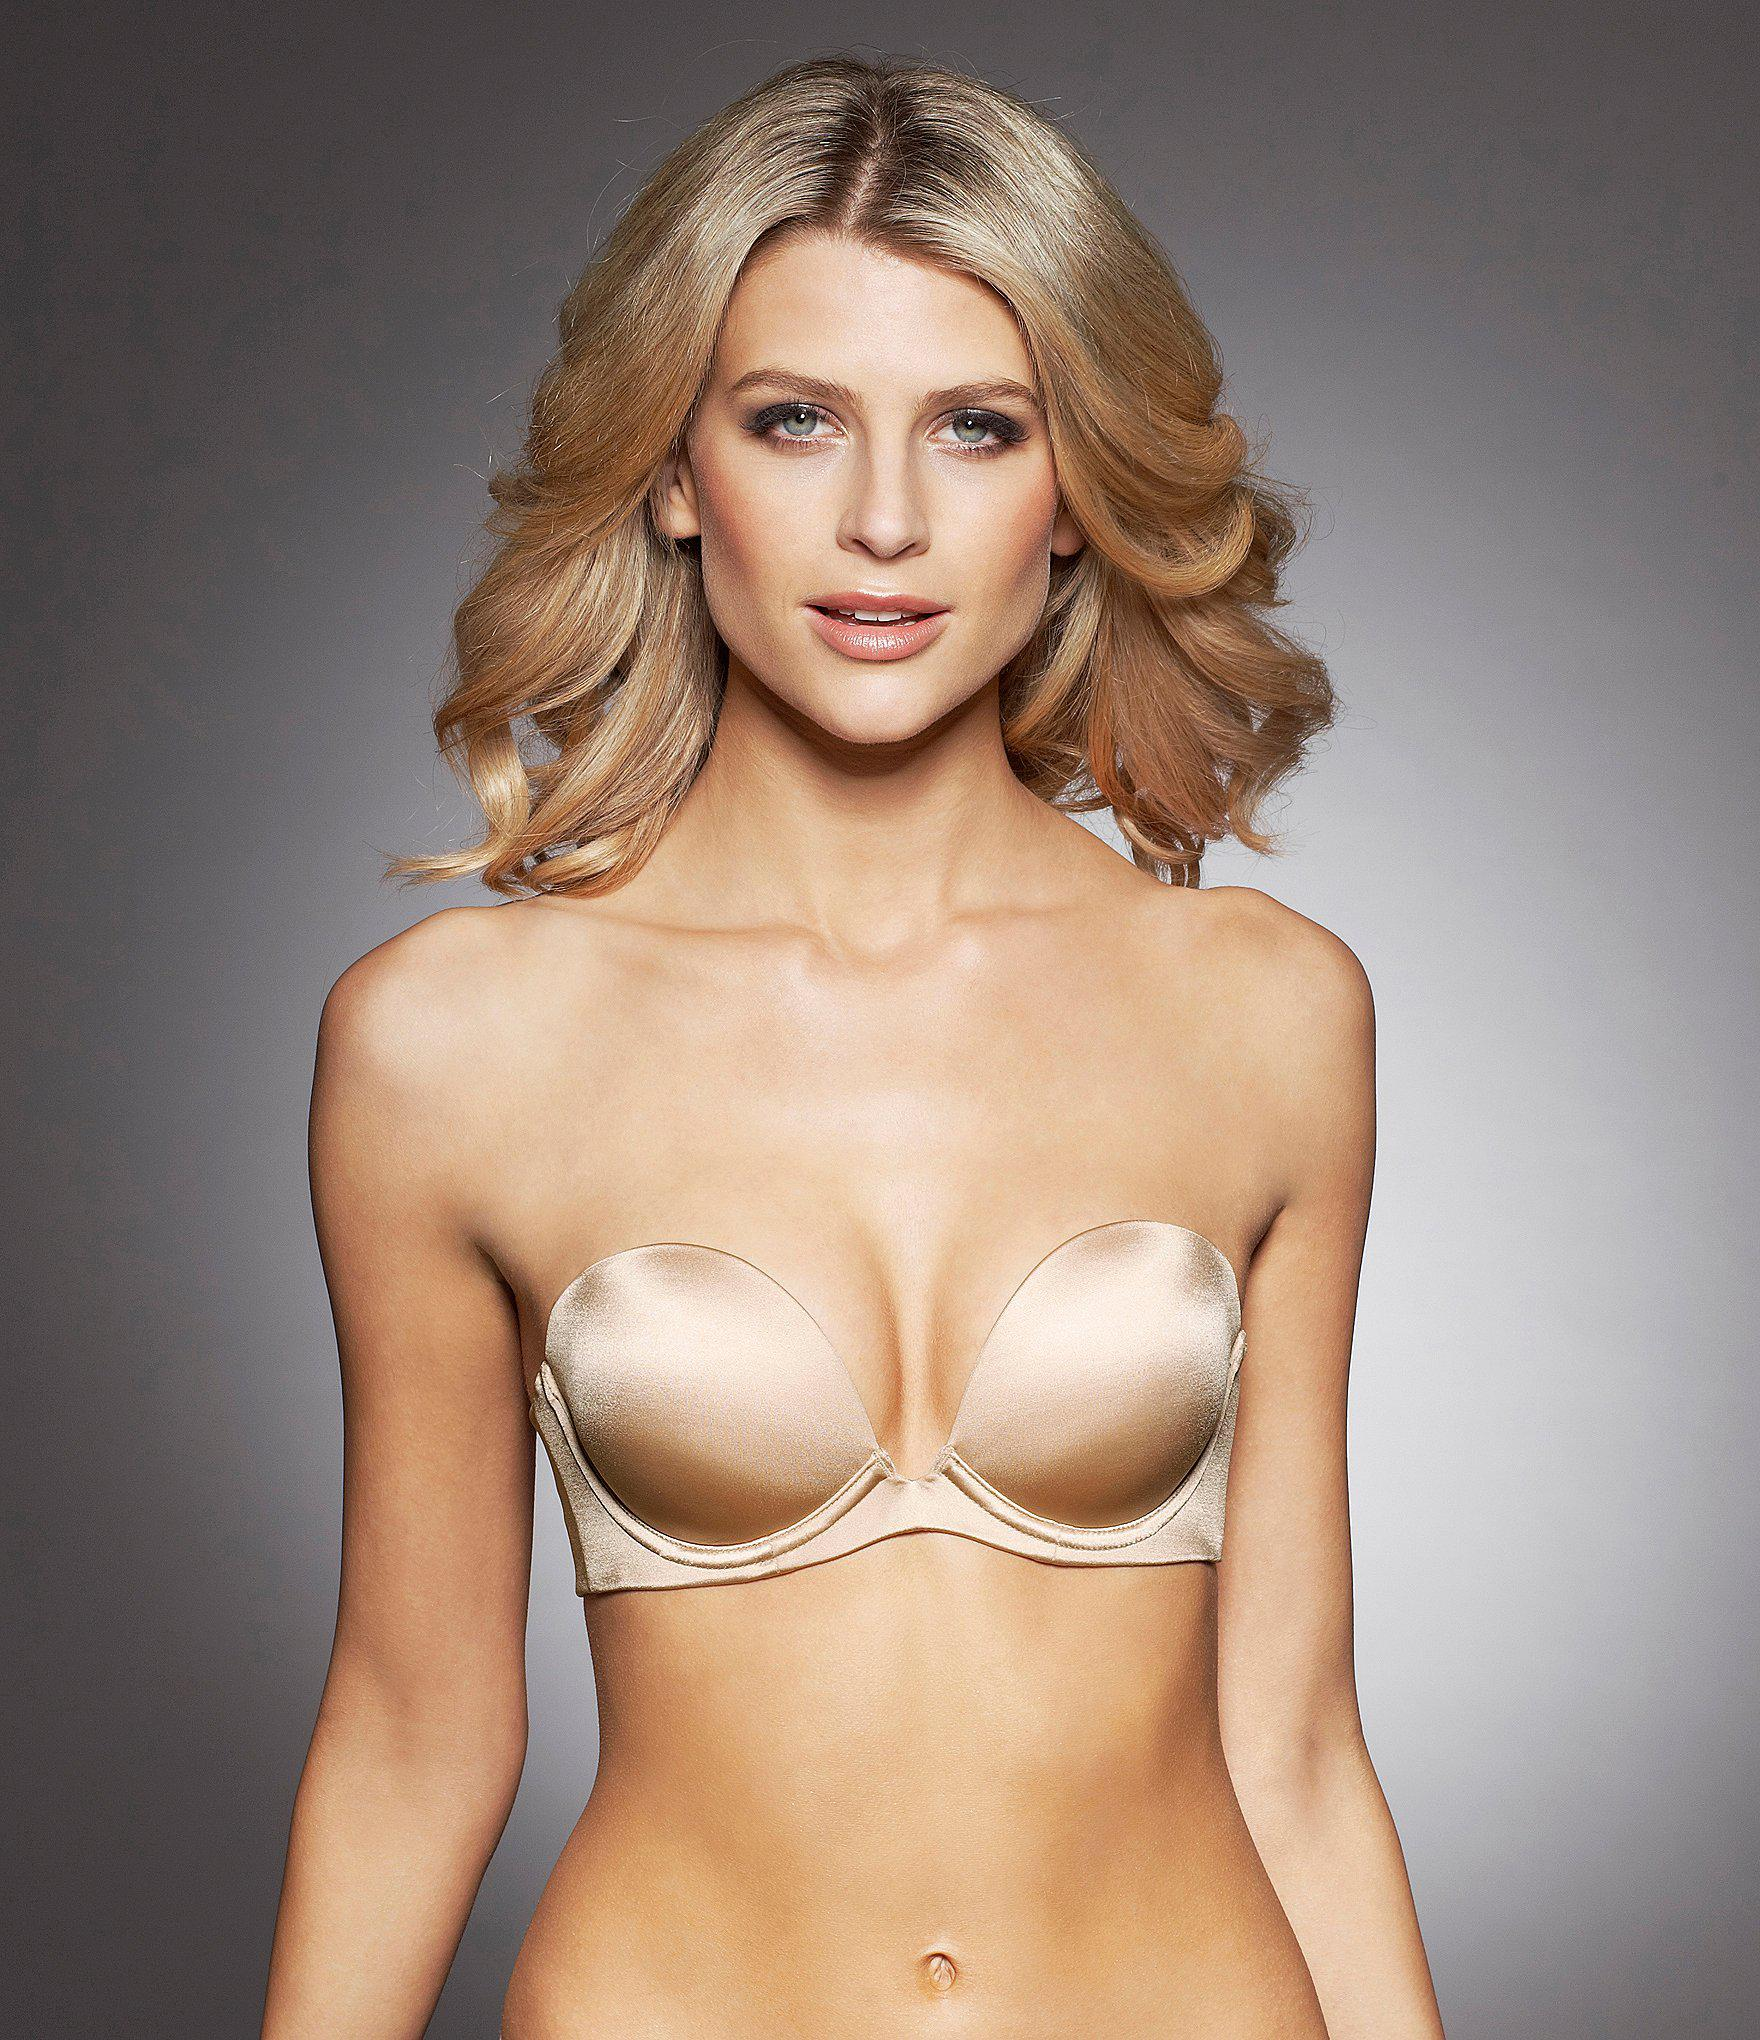 fa799f20af510 Lyst - Fine Lines Australia 6-way Low Cut Convertible Strapless Bra ...